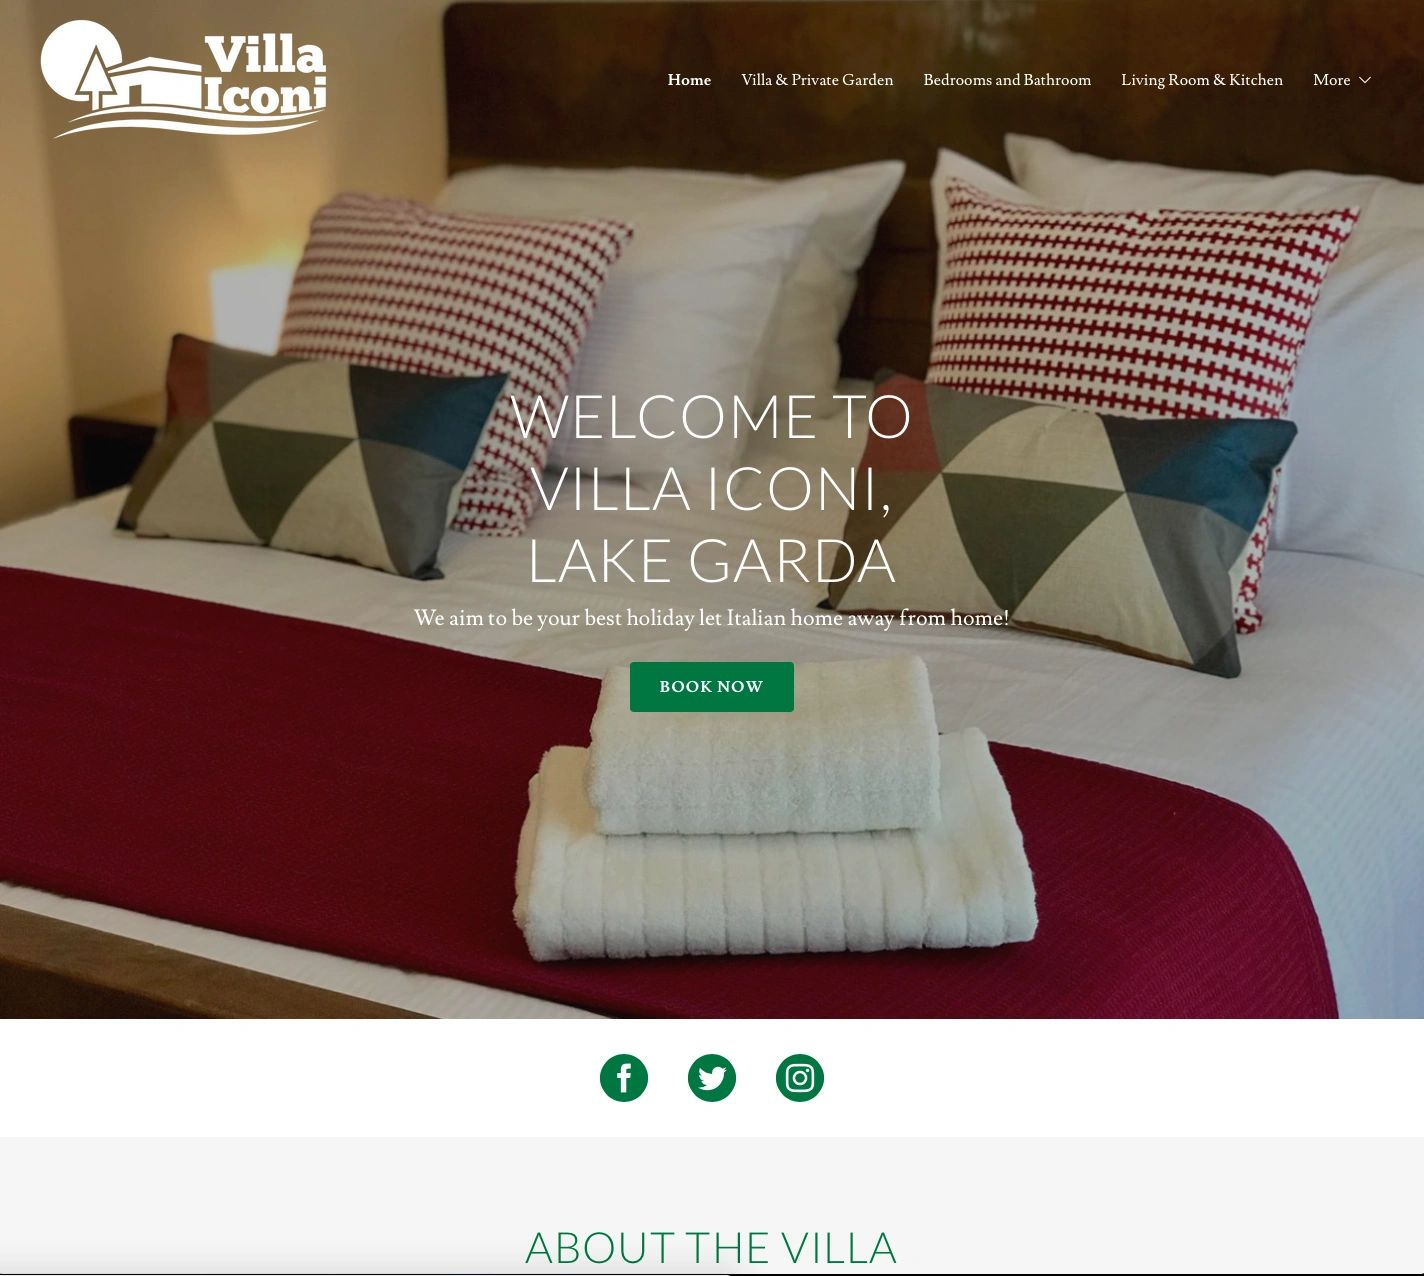 Villa Iconi aims to be the best Italian holiday-let home away from home.